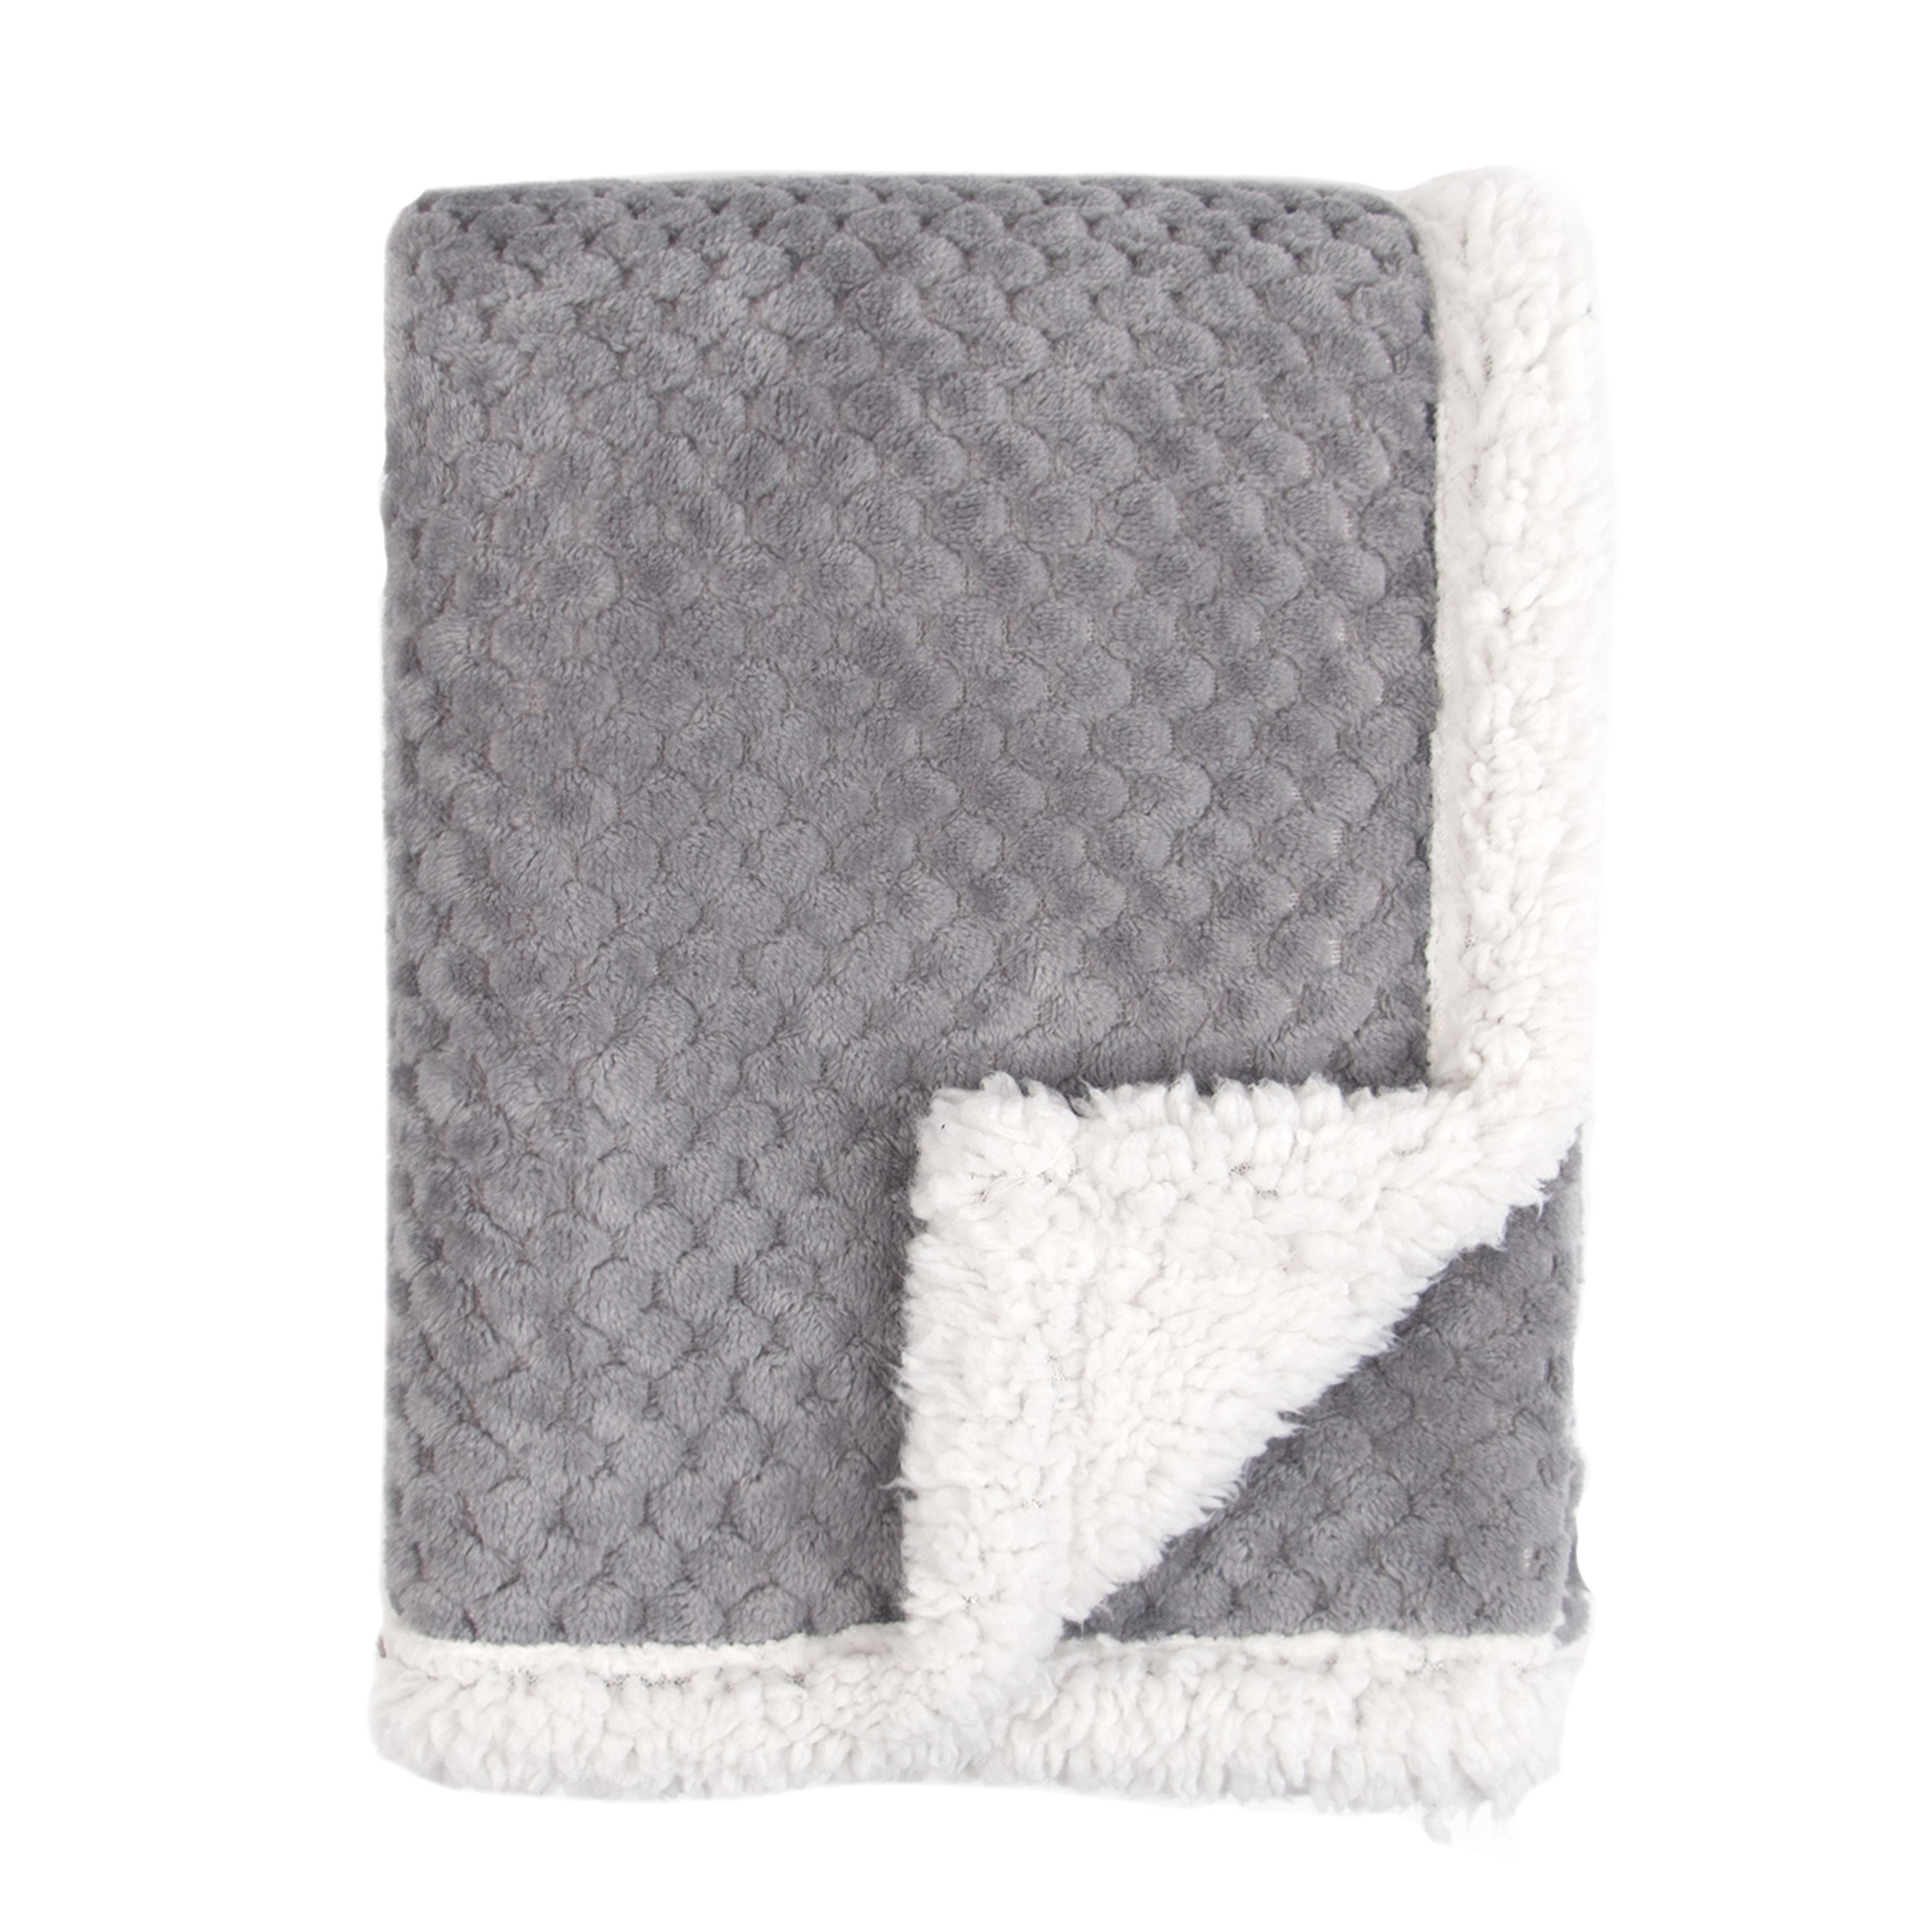 Tadpoles Popcorn Plush and Sherpa Ultra-Soft Baby Blanket, Grey product image